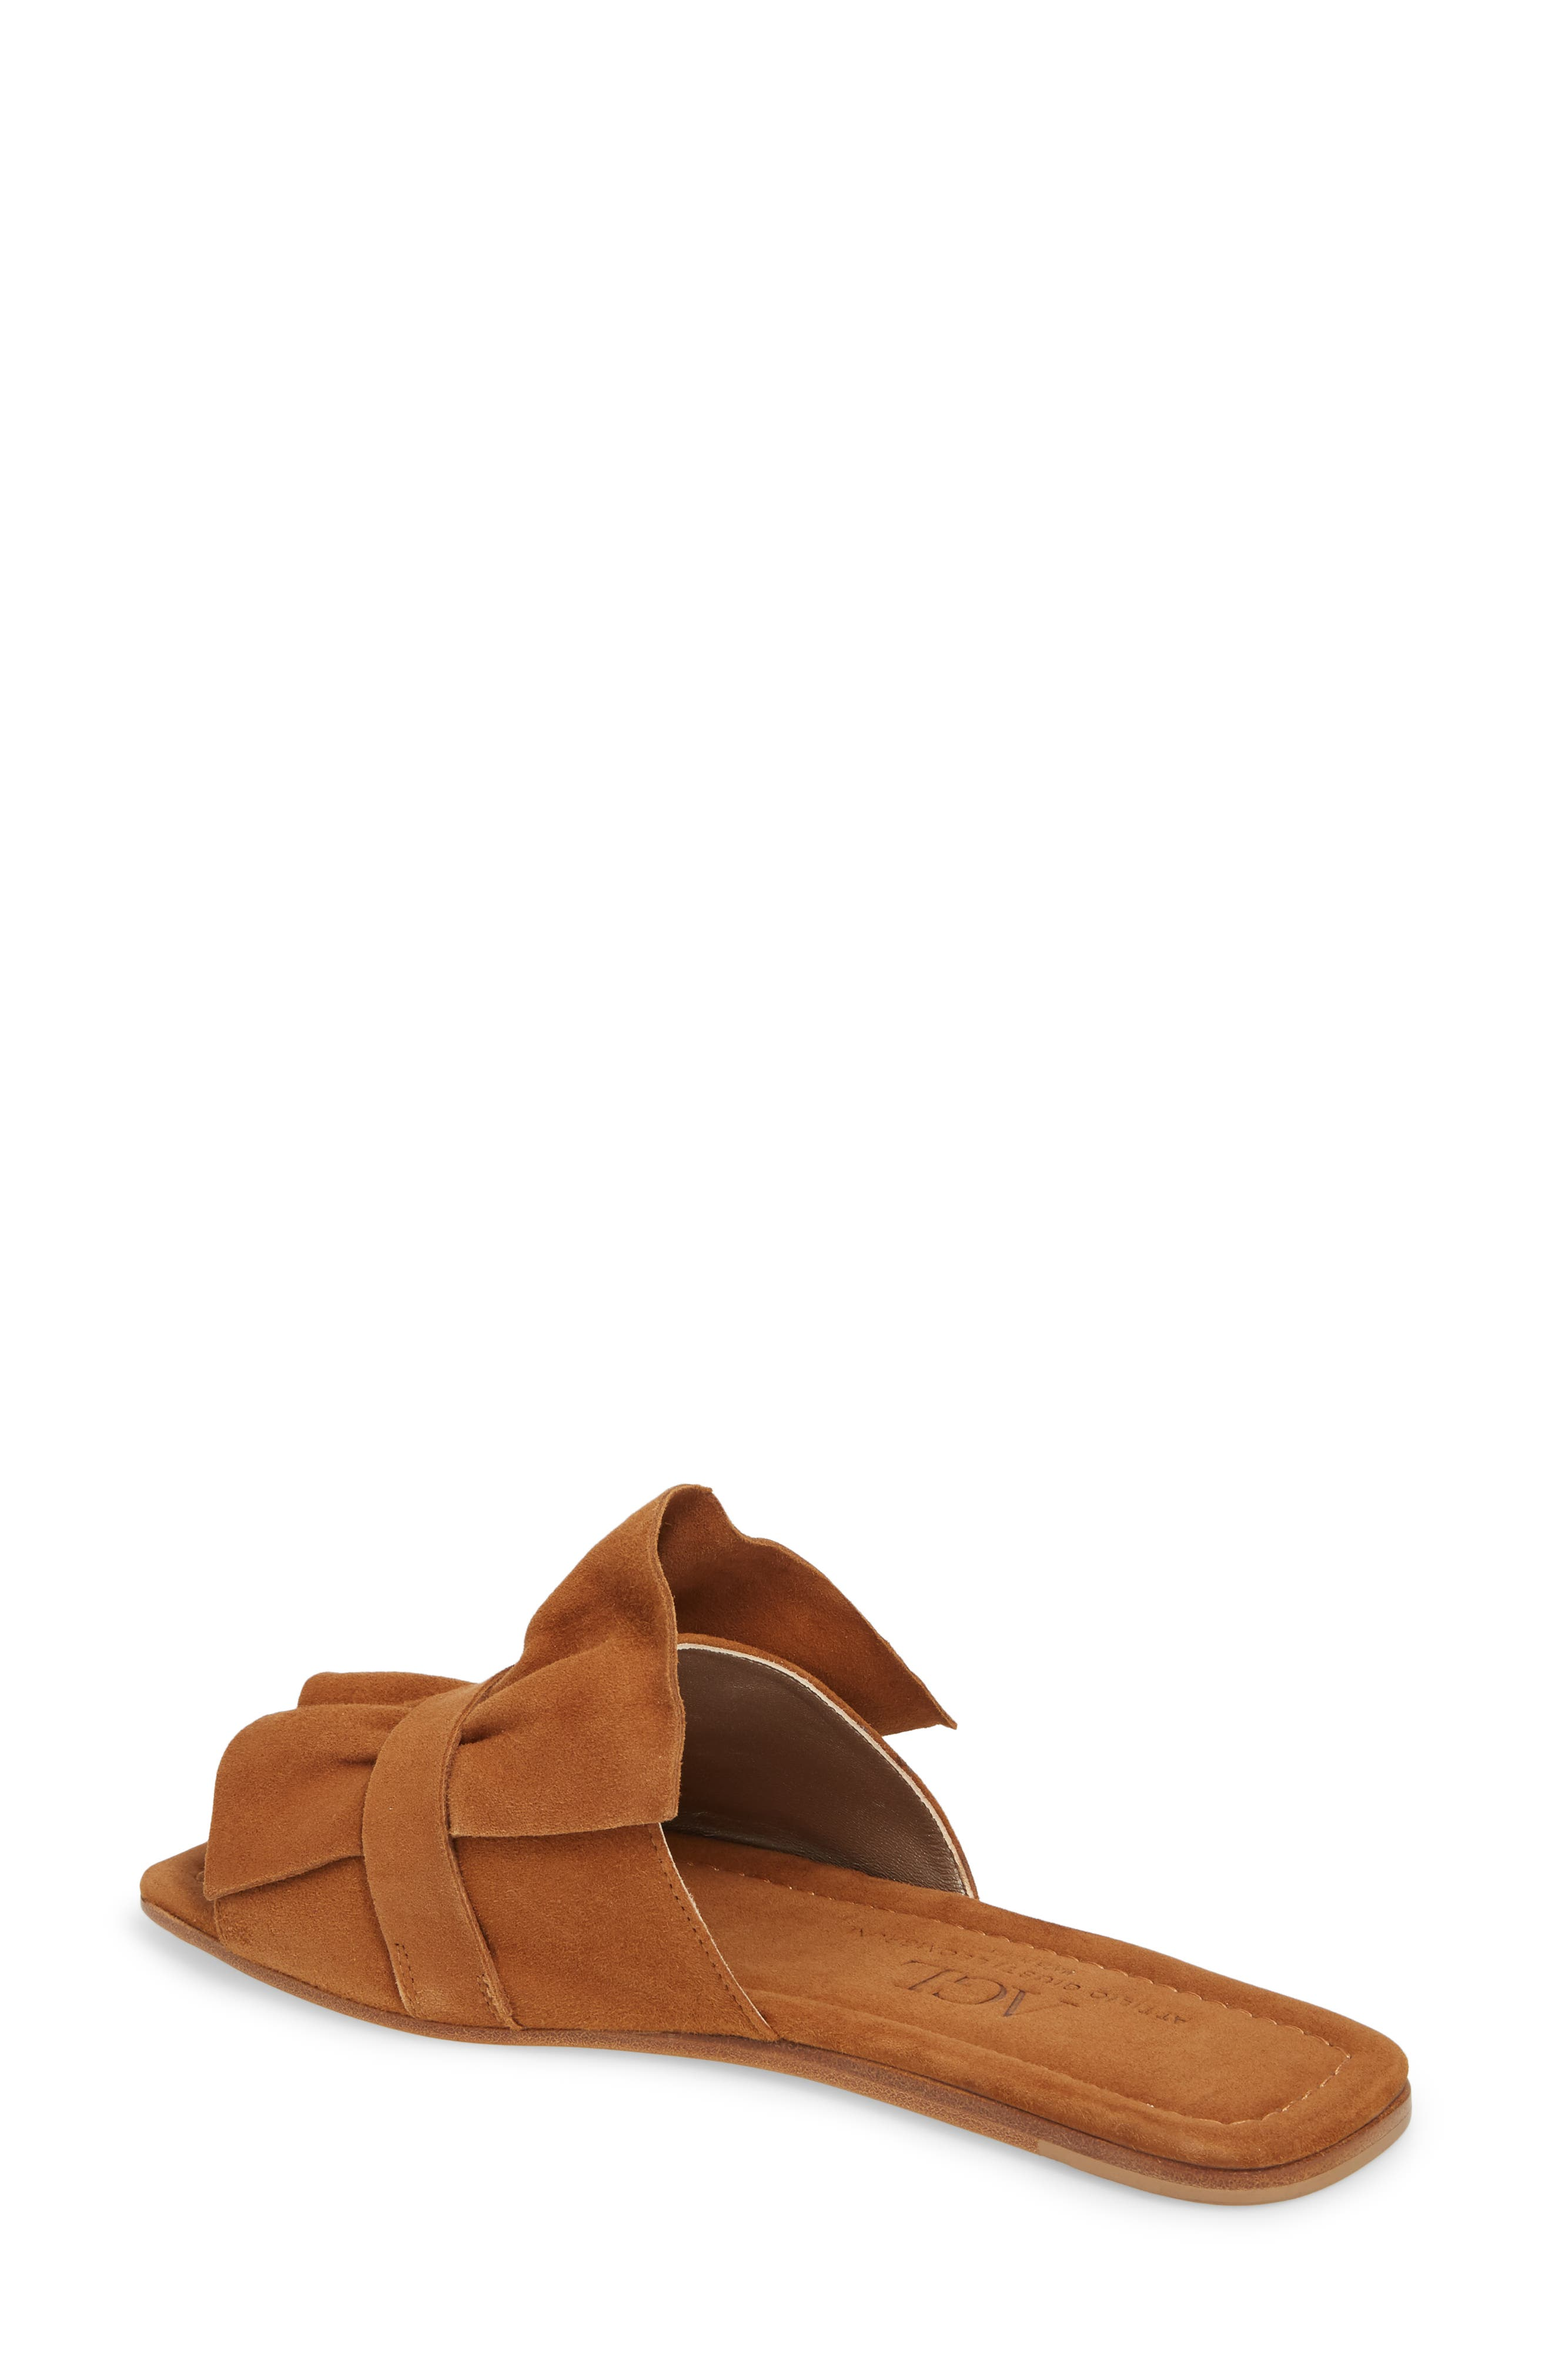 Ruched Slide Sandal,                             Alternate thumbnail 2, color,                             245